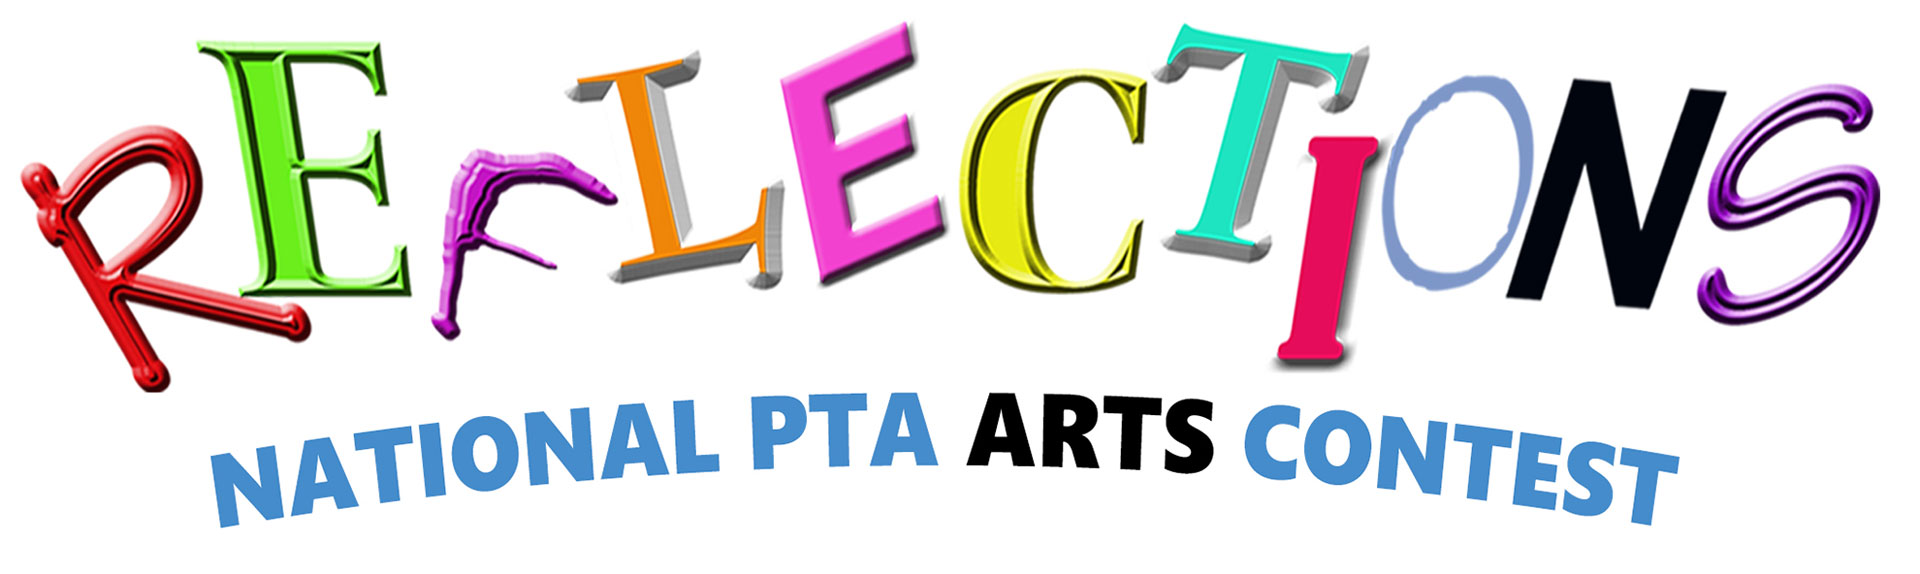 Reflections national PTA art contest